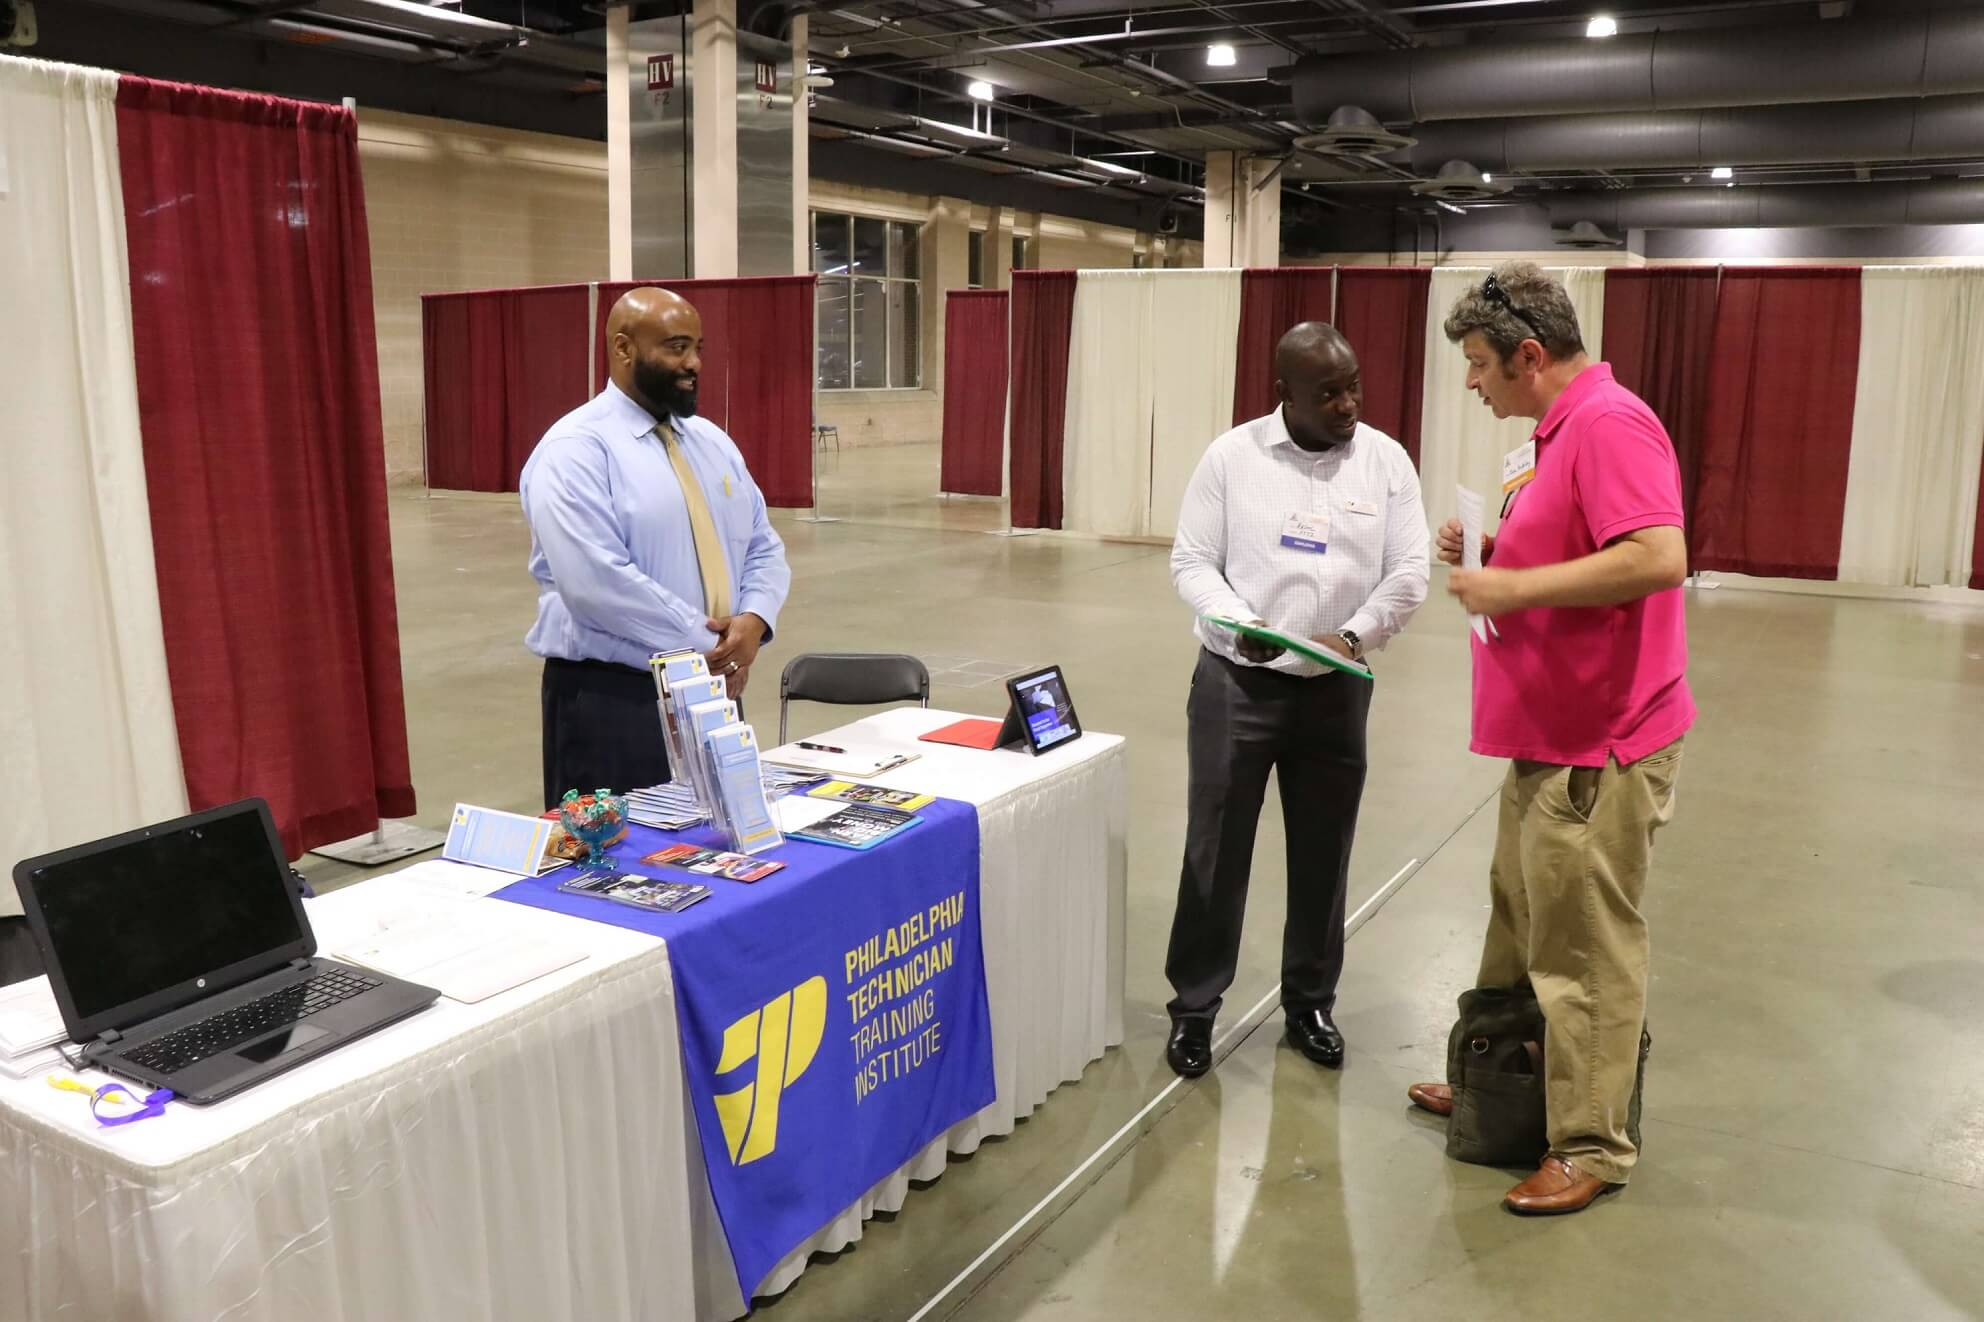 Career Counselling and Career advice at Philadelphia Technician Training Institute, Top Trade School in Philadelphia